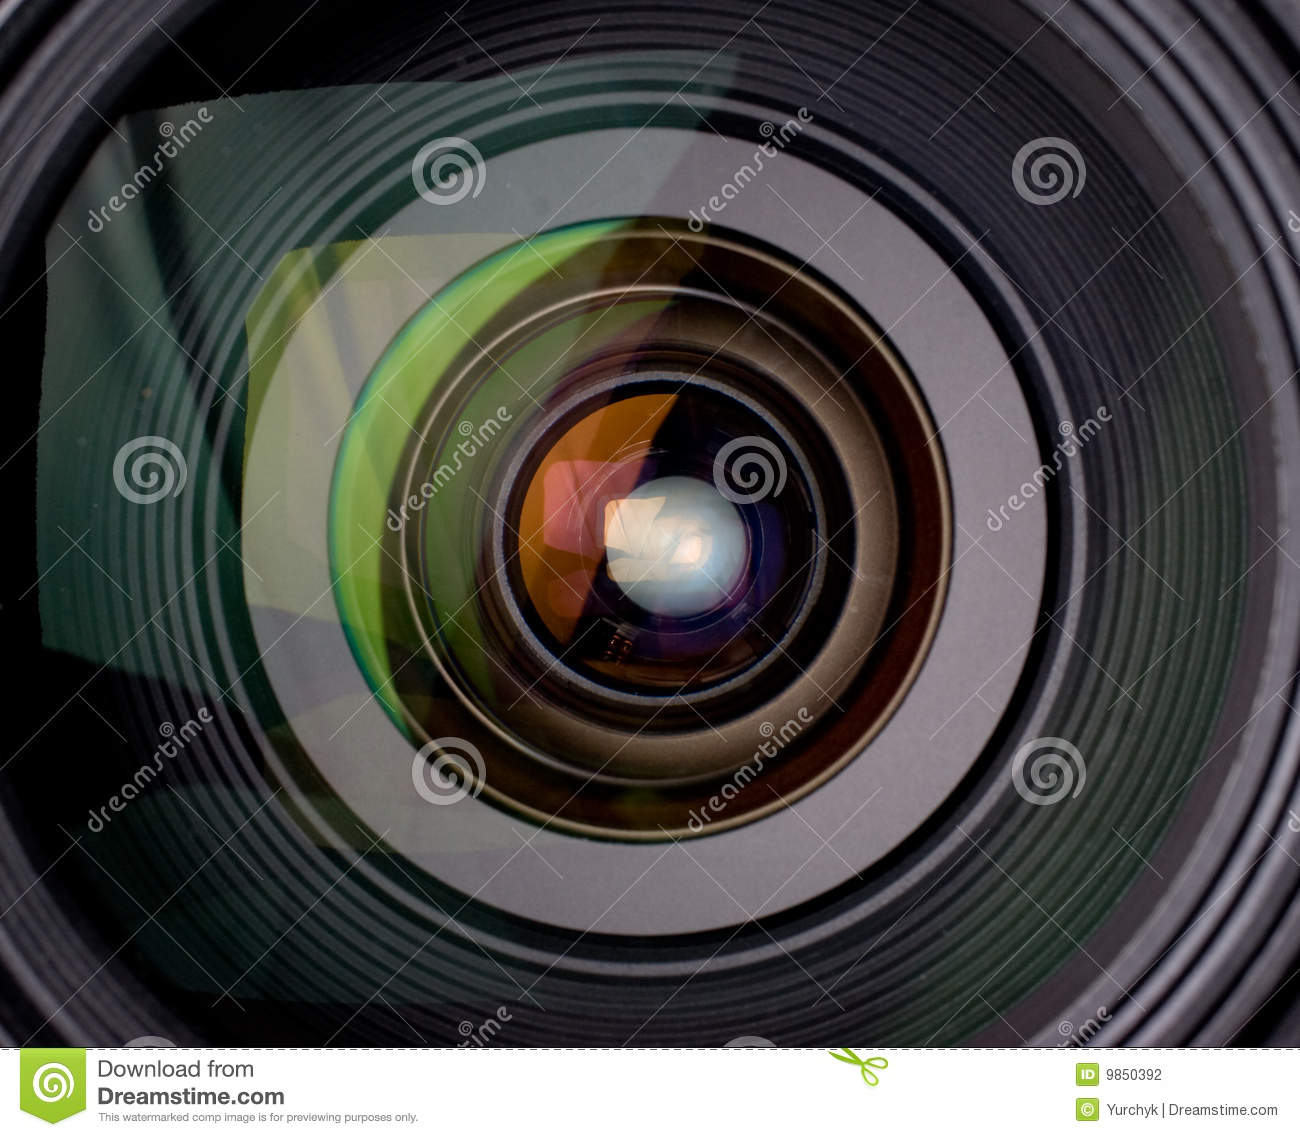 Camera Lens With Reflection Stock Photography - Image: 9850392 Video Camera Lens Reflection